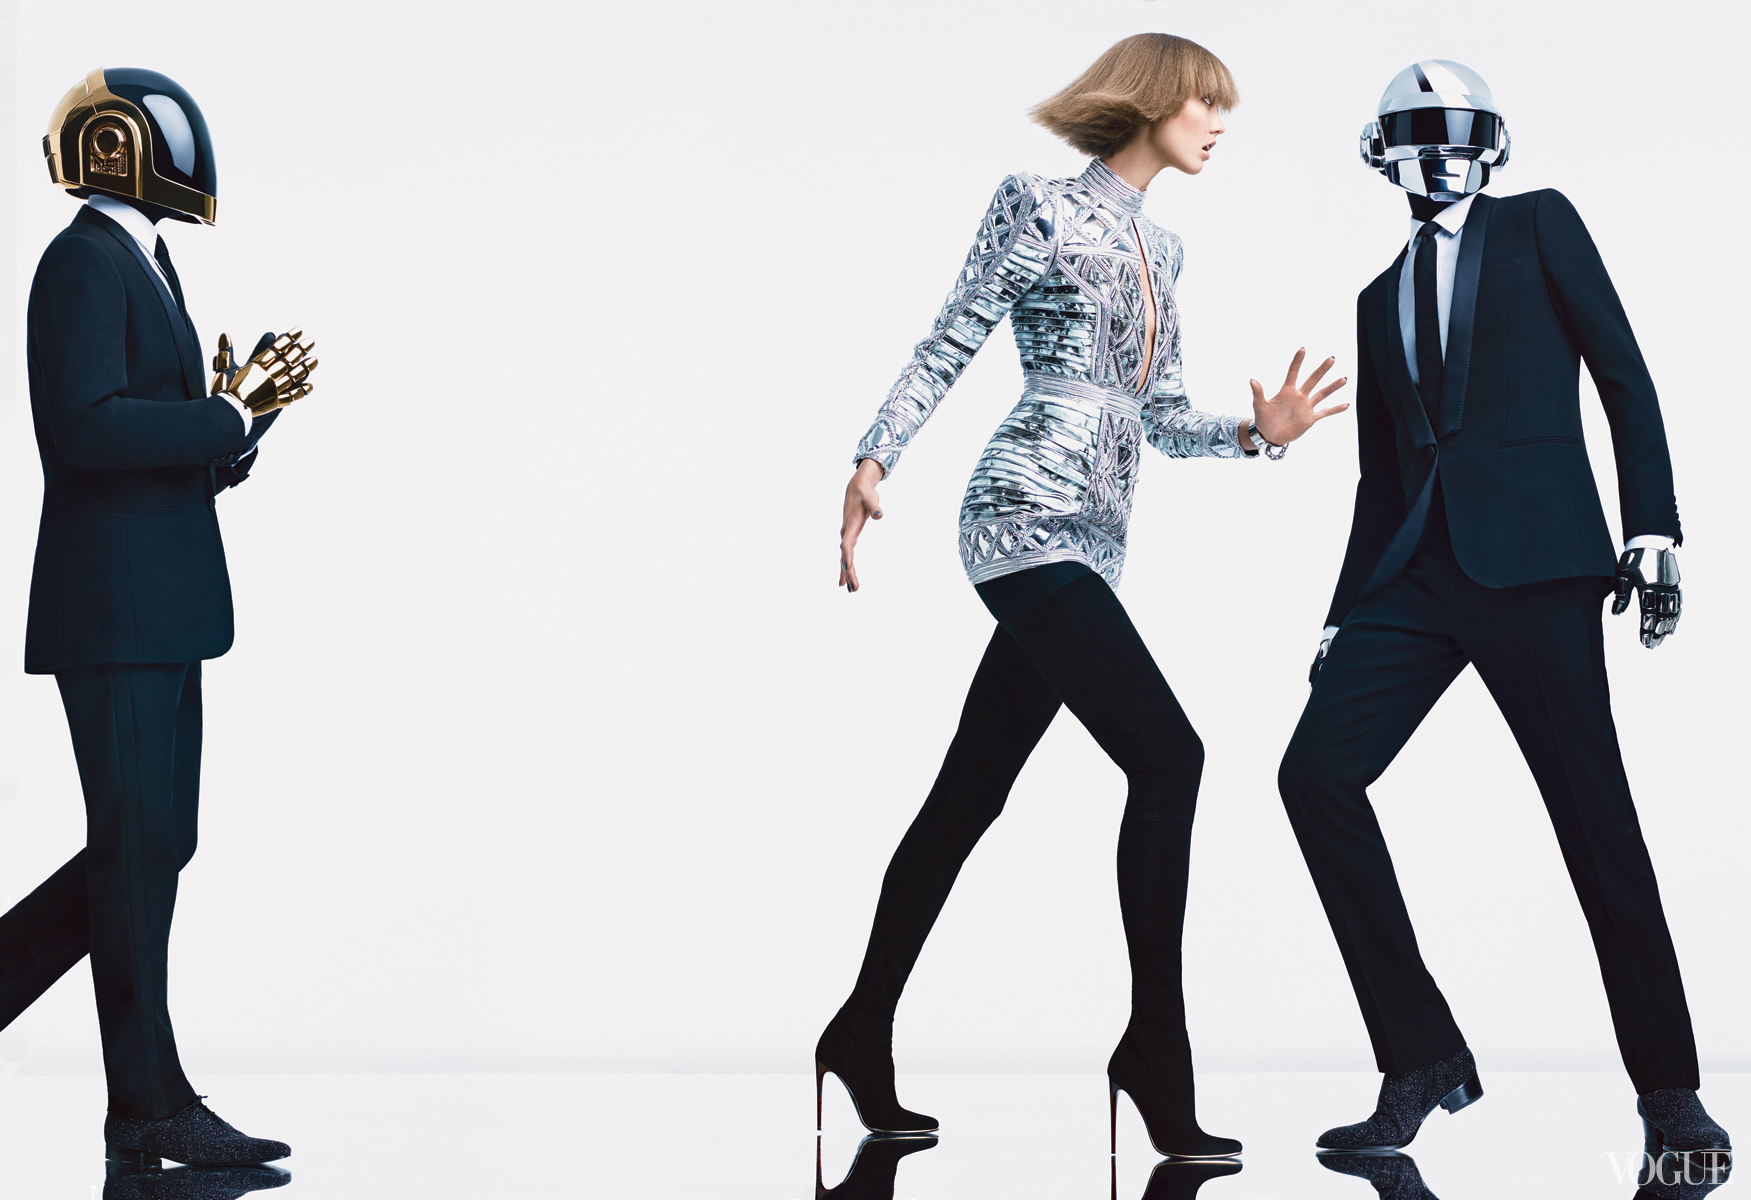 VOGUE-Daft-Punk-Karlie-Kloss-2